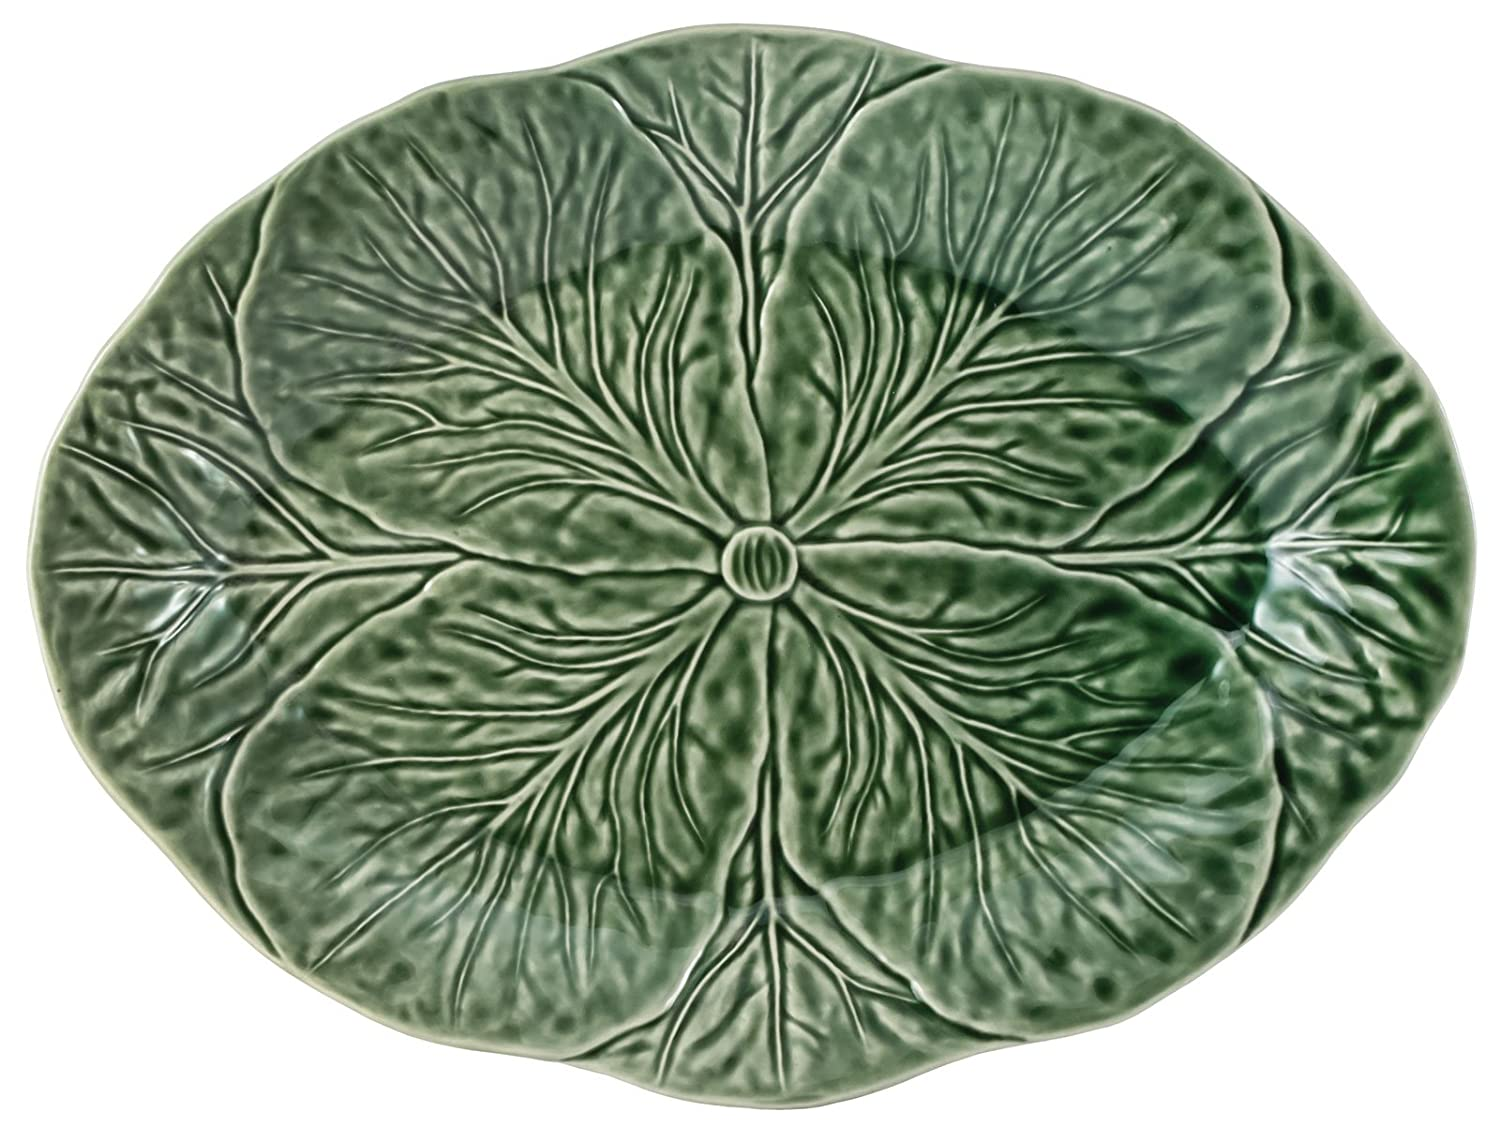 Christmas Tablescape Décor - Majolica Green Cabbage Leaf Pottery Large Oval Platter